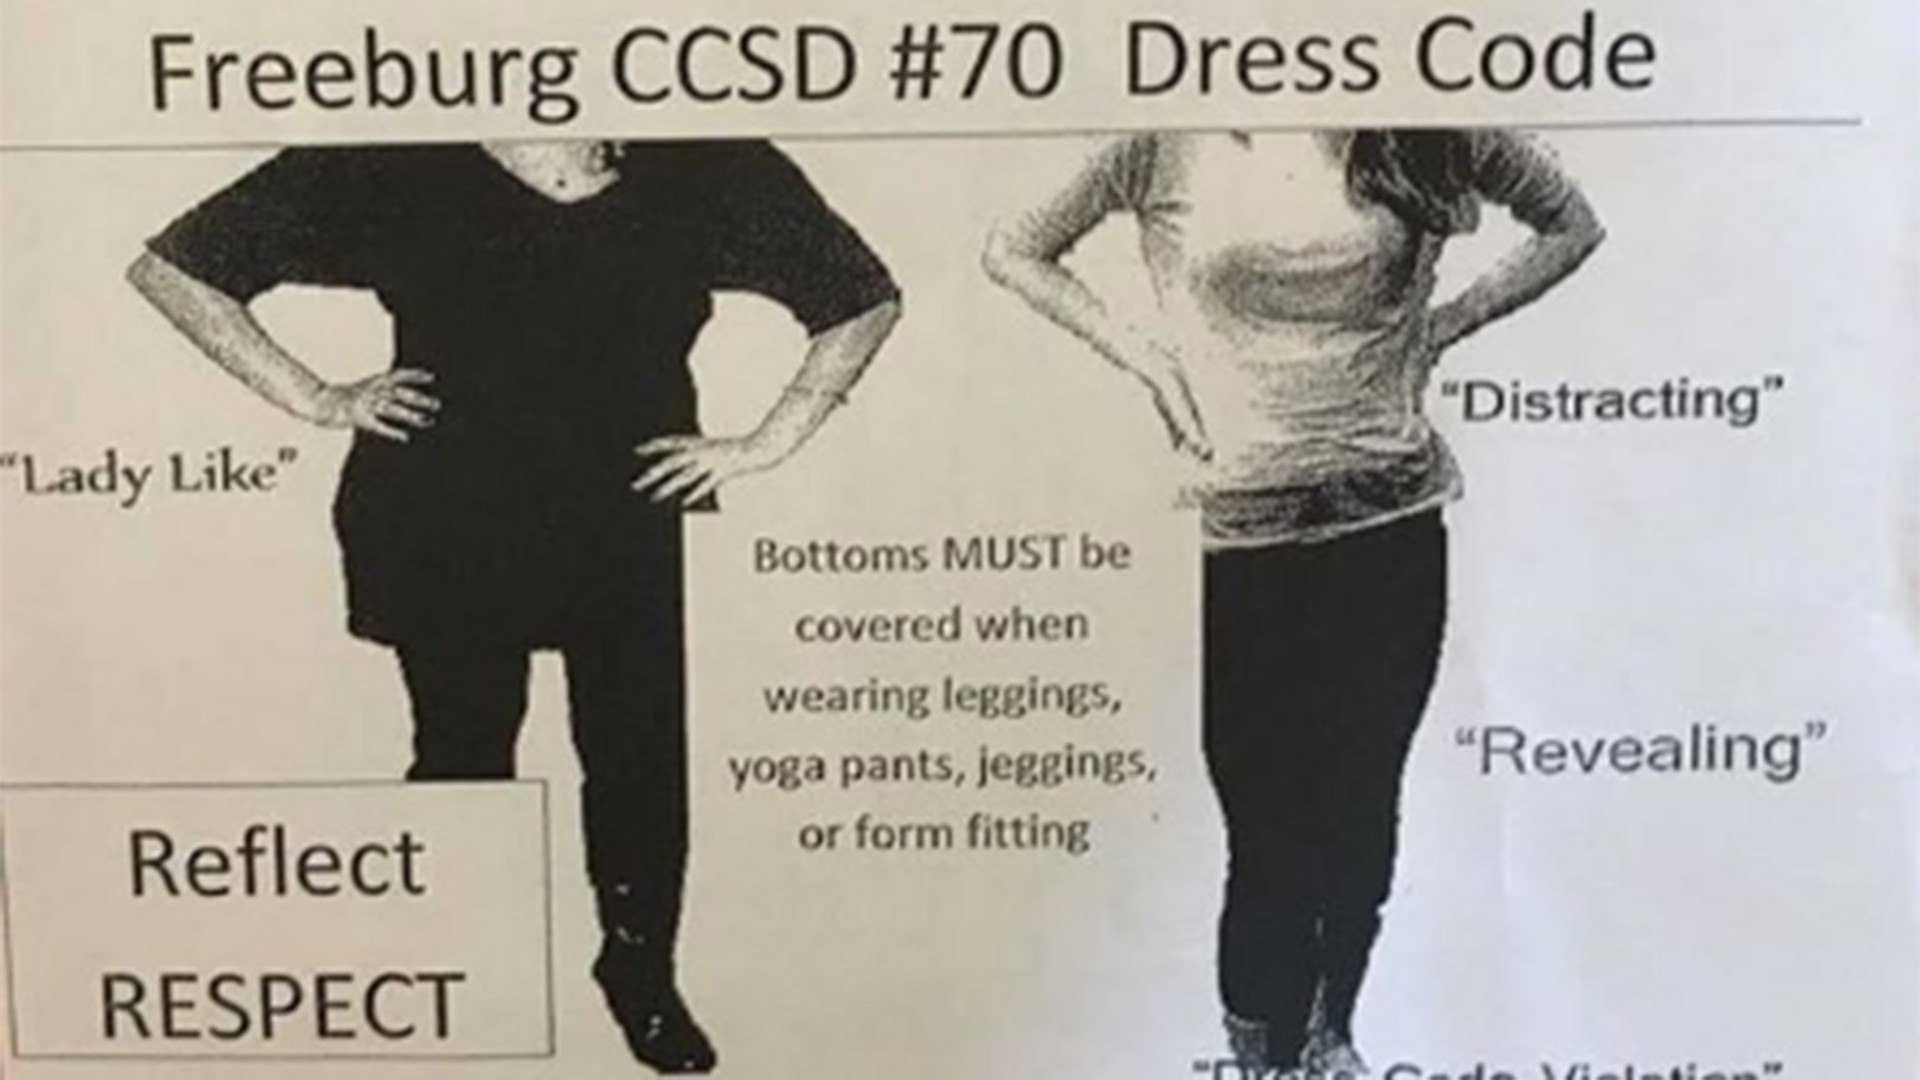 014 Satire Essay On School Dress Code Dresscode Today Tease 27227fd8ea9de65ba33f62eb08a826f4 Beautiful 1920